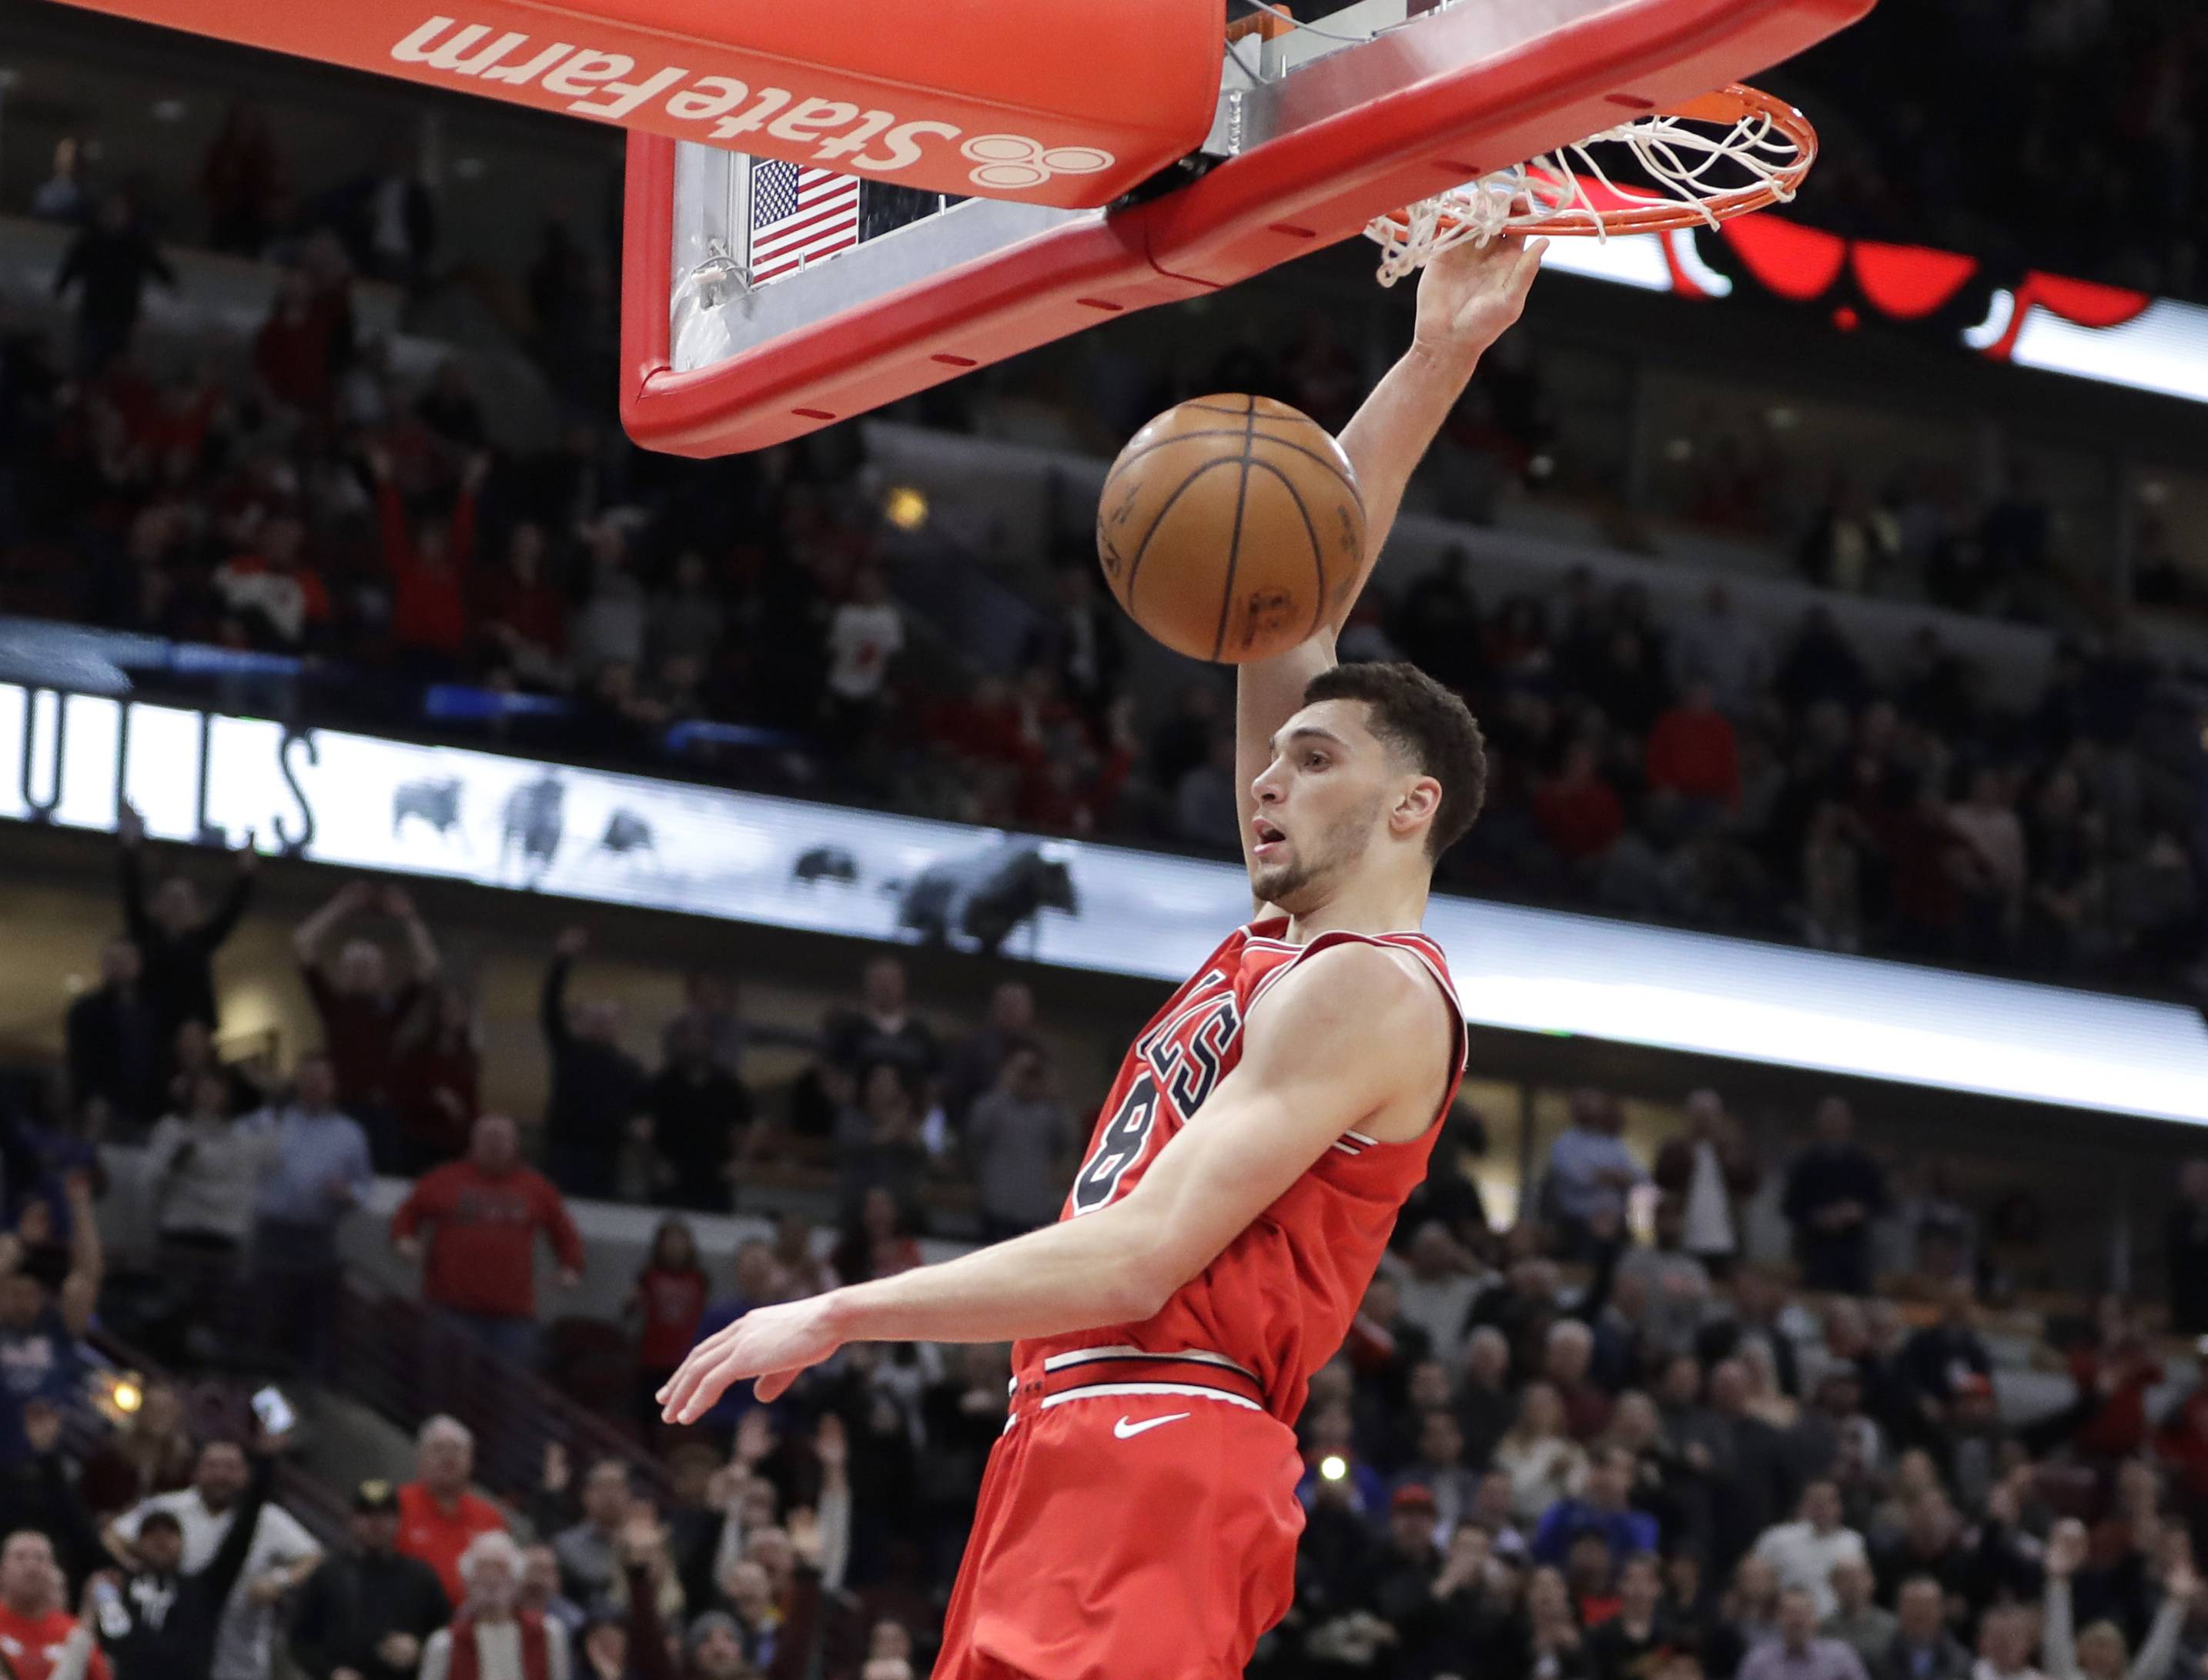 Chicago Bulls' Zach LaVine dunks the ball after stealing a pass intended for Orlando Magic's Shelvin Mack during the second half of an NBA basketball game Monday, Feb. 12, 2018, in Chicago. Bulls won 105-101.